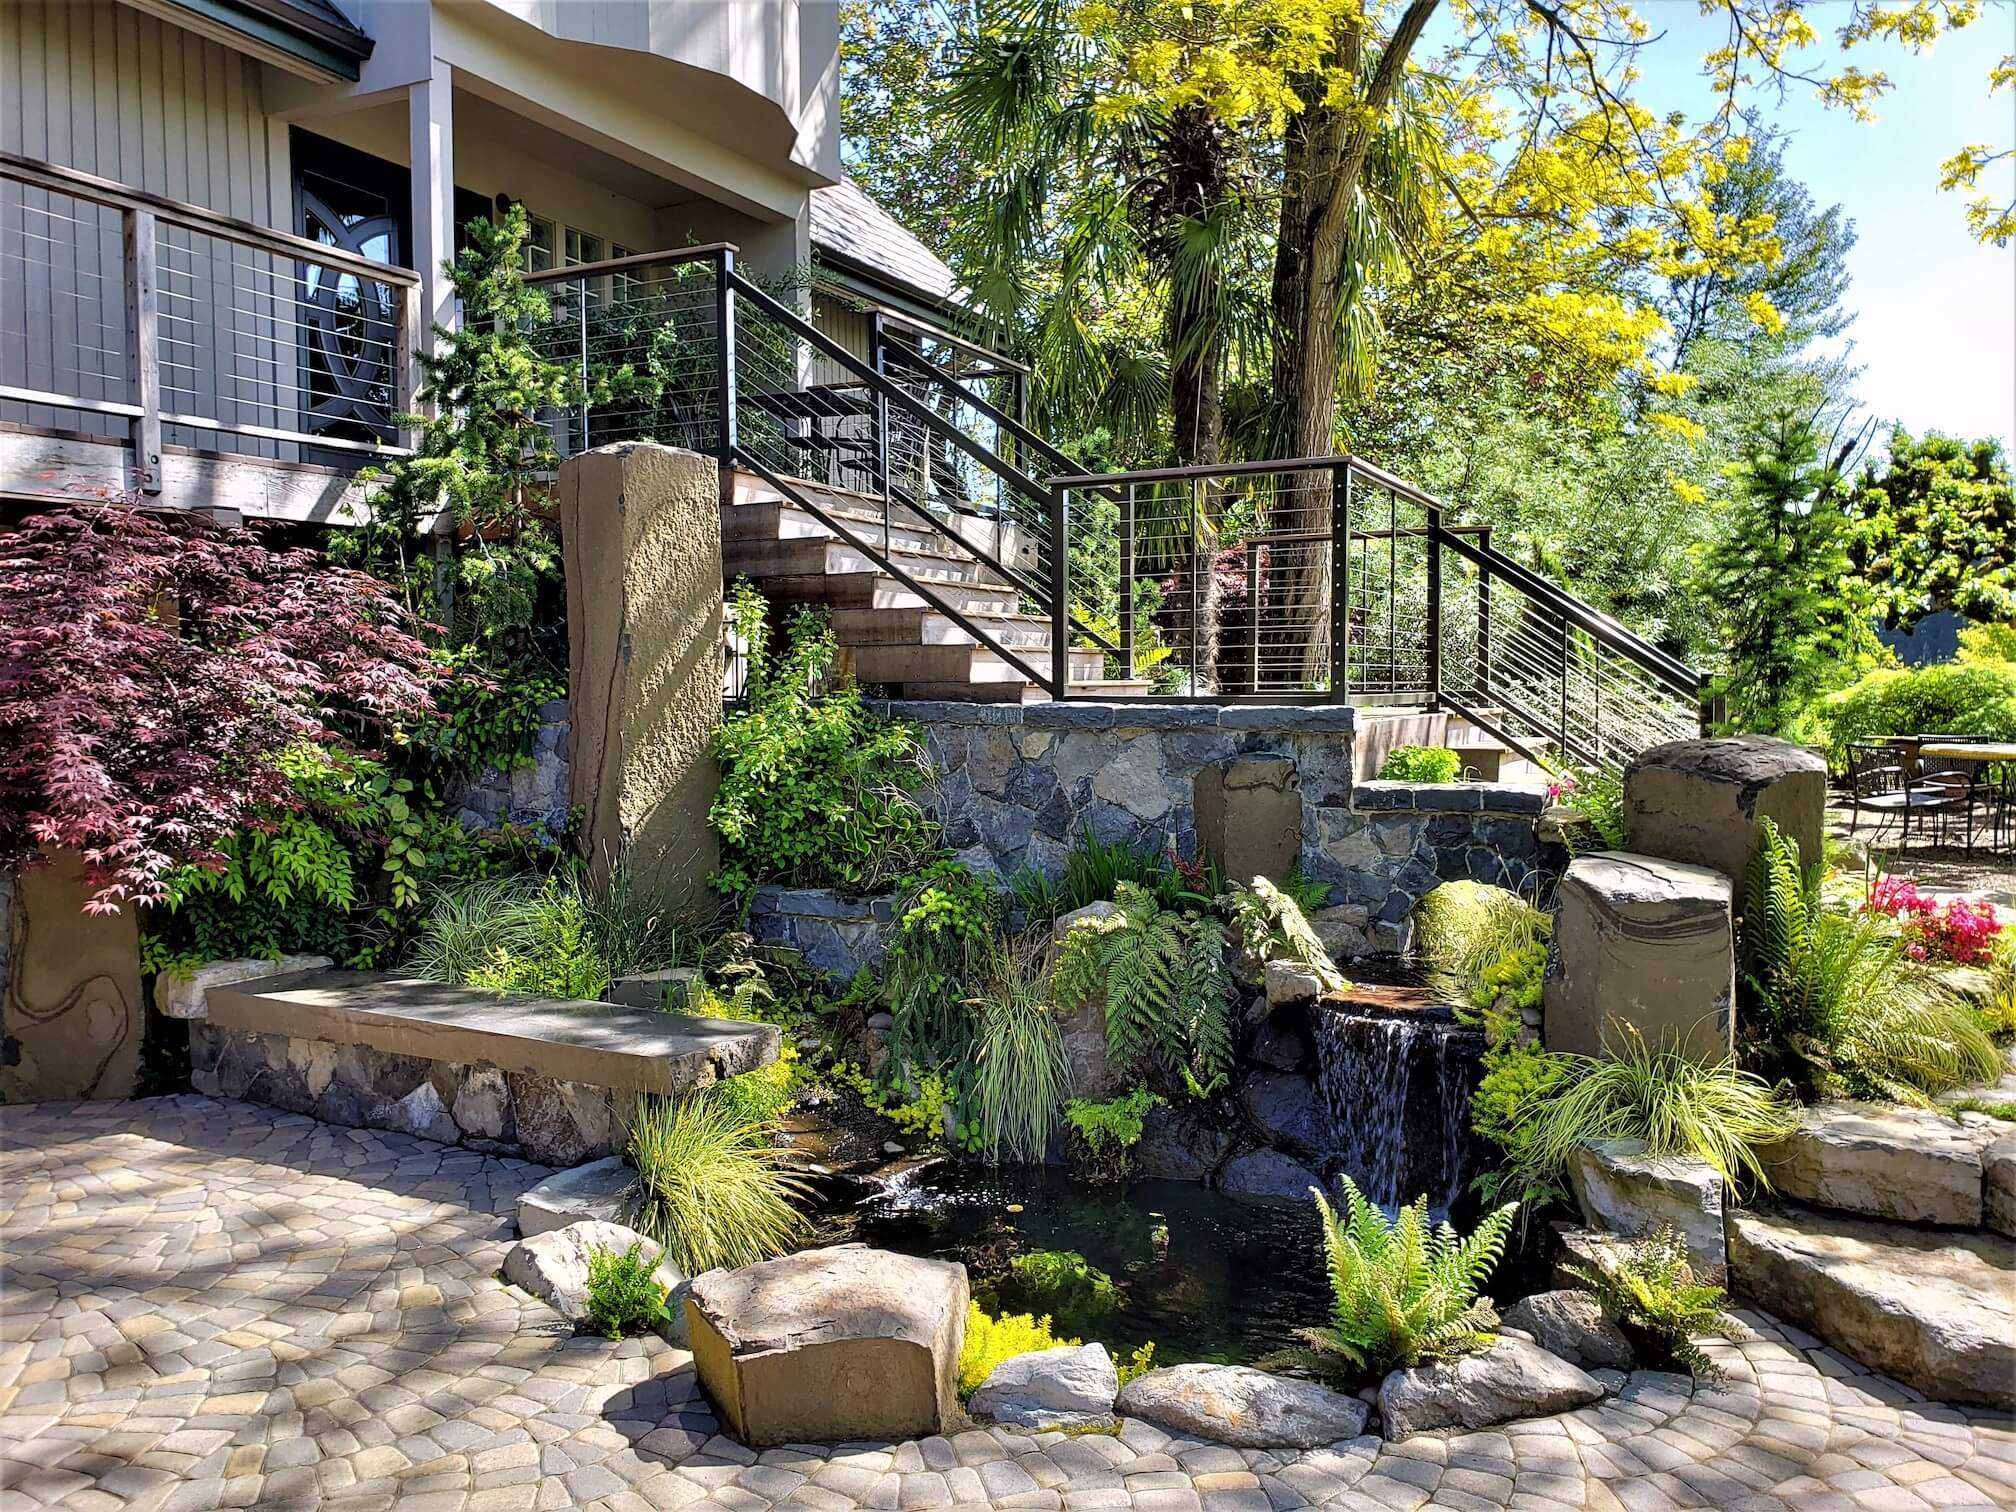 Cobblestone water features